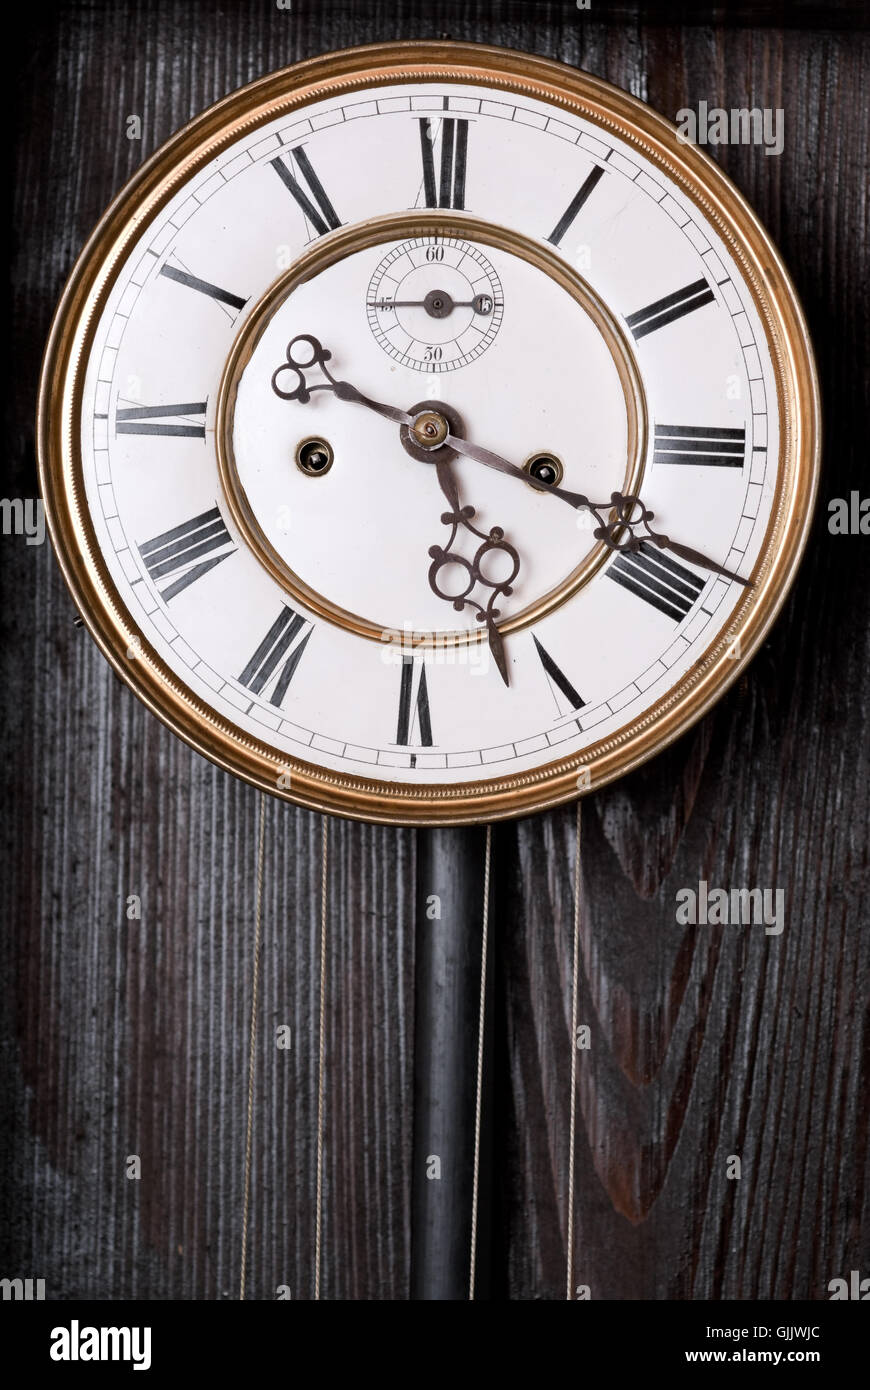 wood face clock - Stock Image